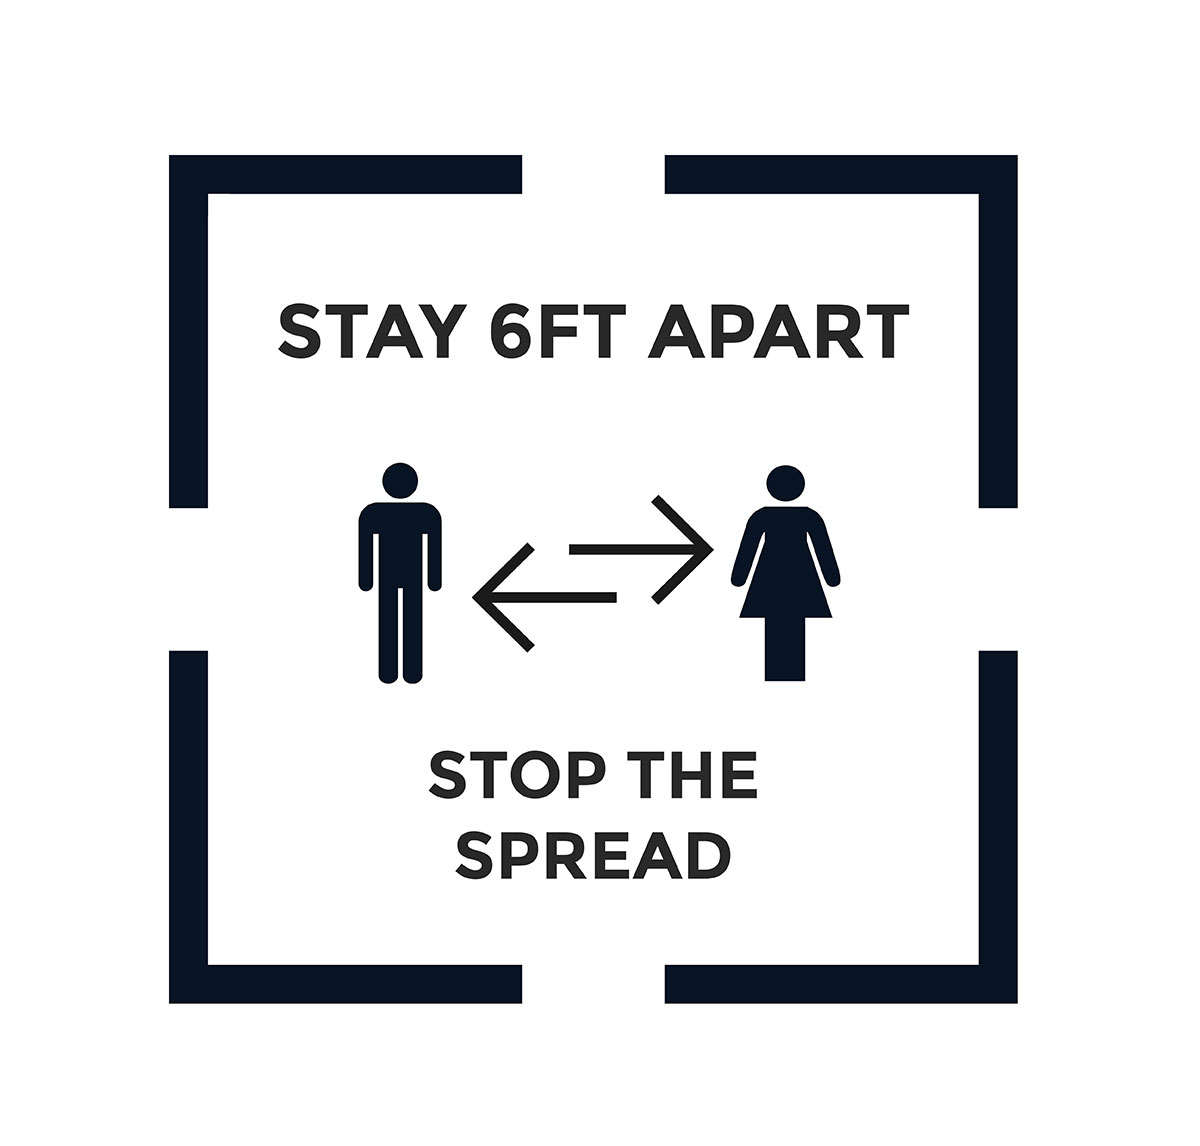 6 Feet Apart: Stay 6ft Apart Decal